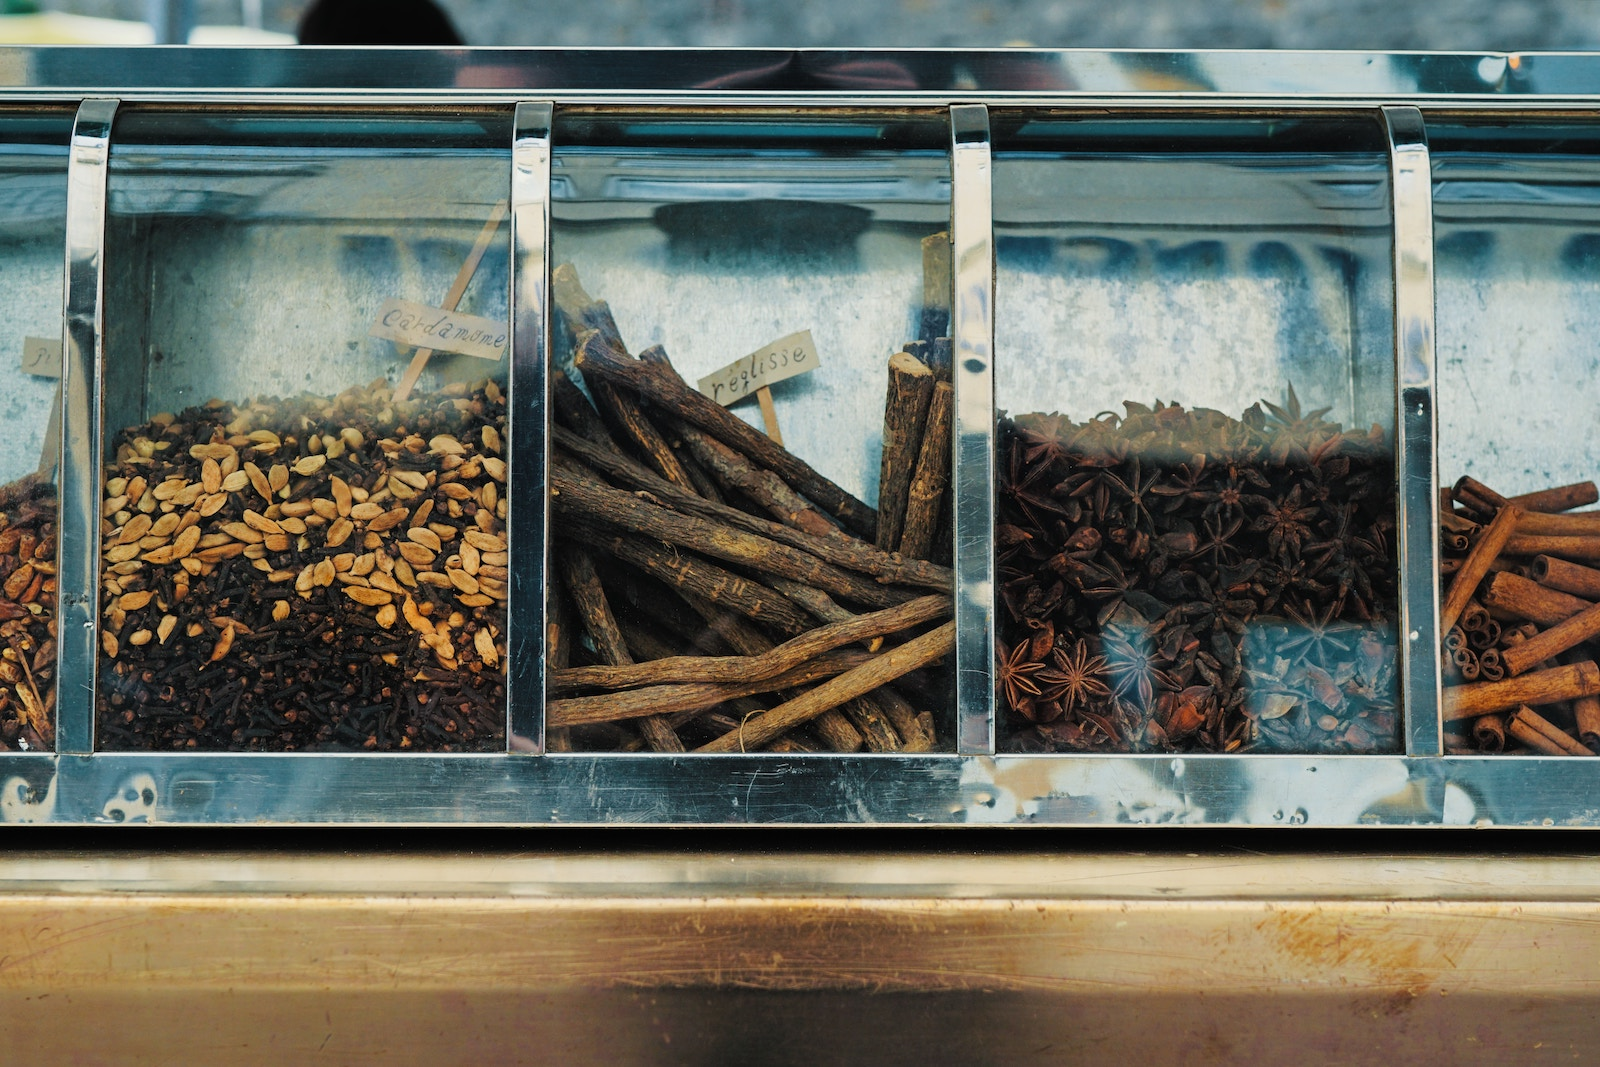 acupuncture herbs